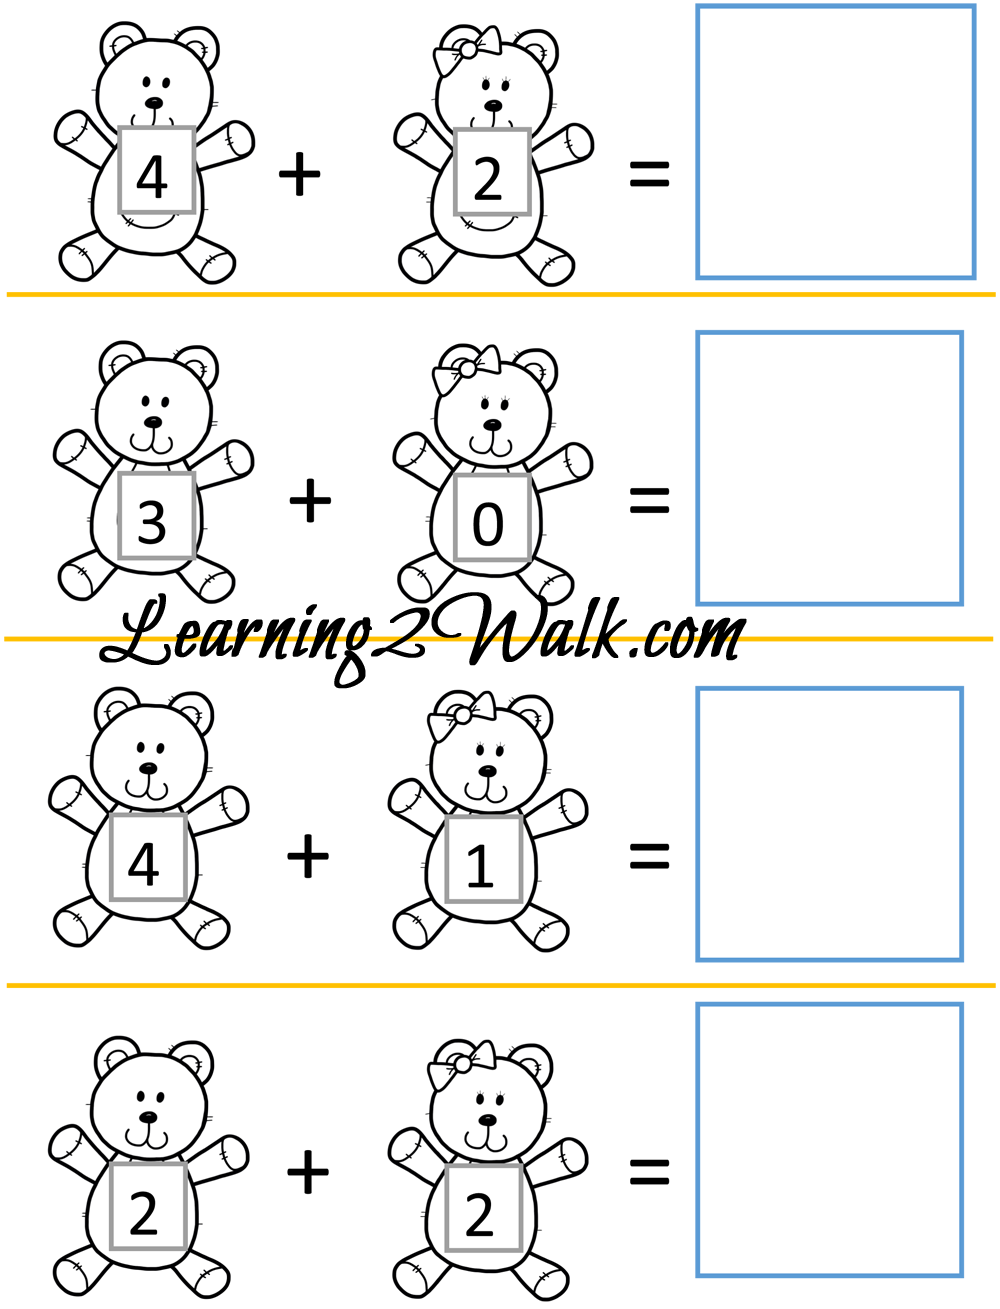 worksheet Teddy Bear Worksheets teddy bear kindergarten worksheet set worksheets addition worksheet